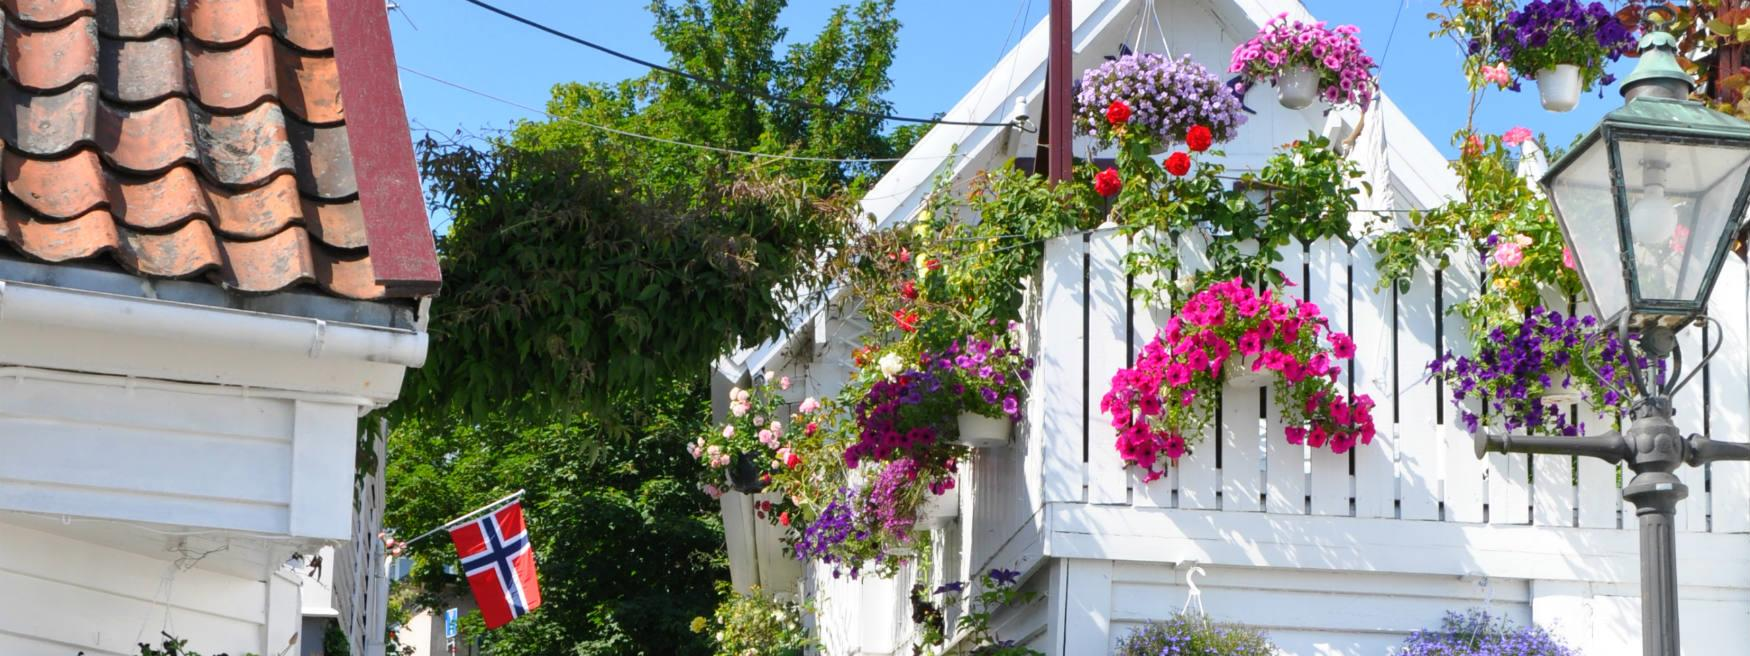 Gorgeous flowers in Old Stavanger